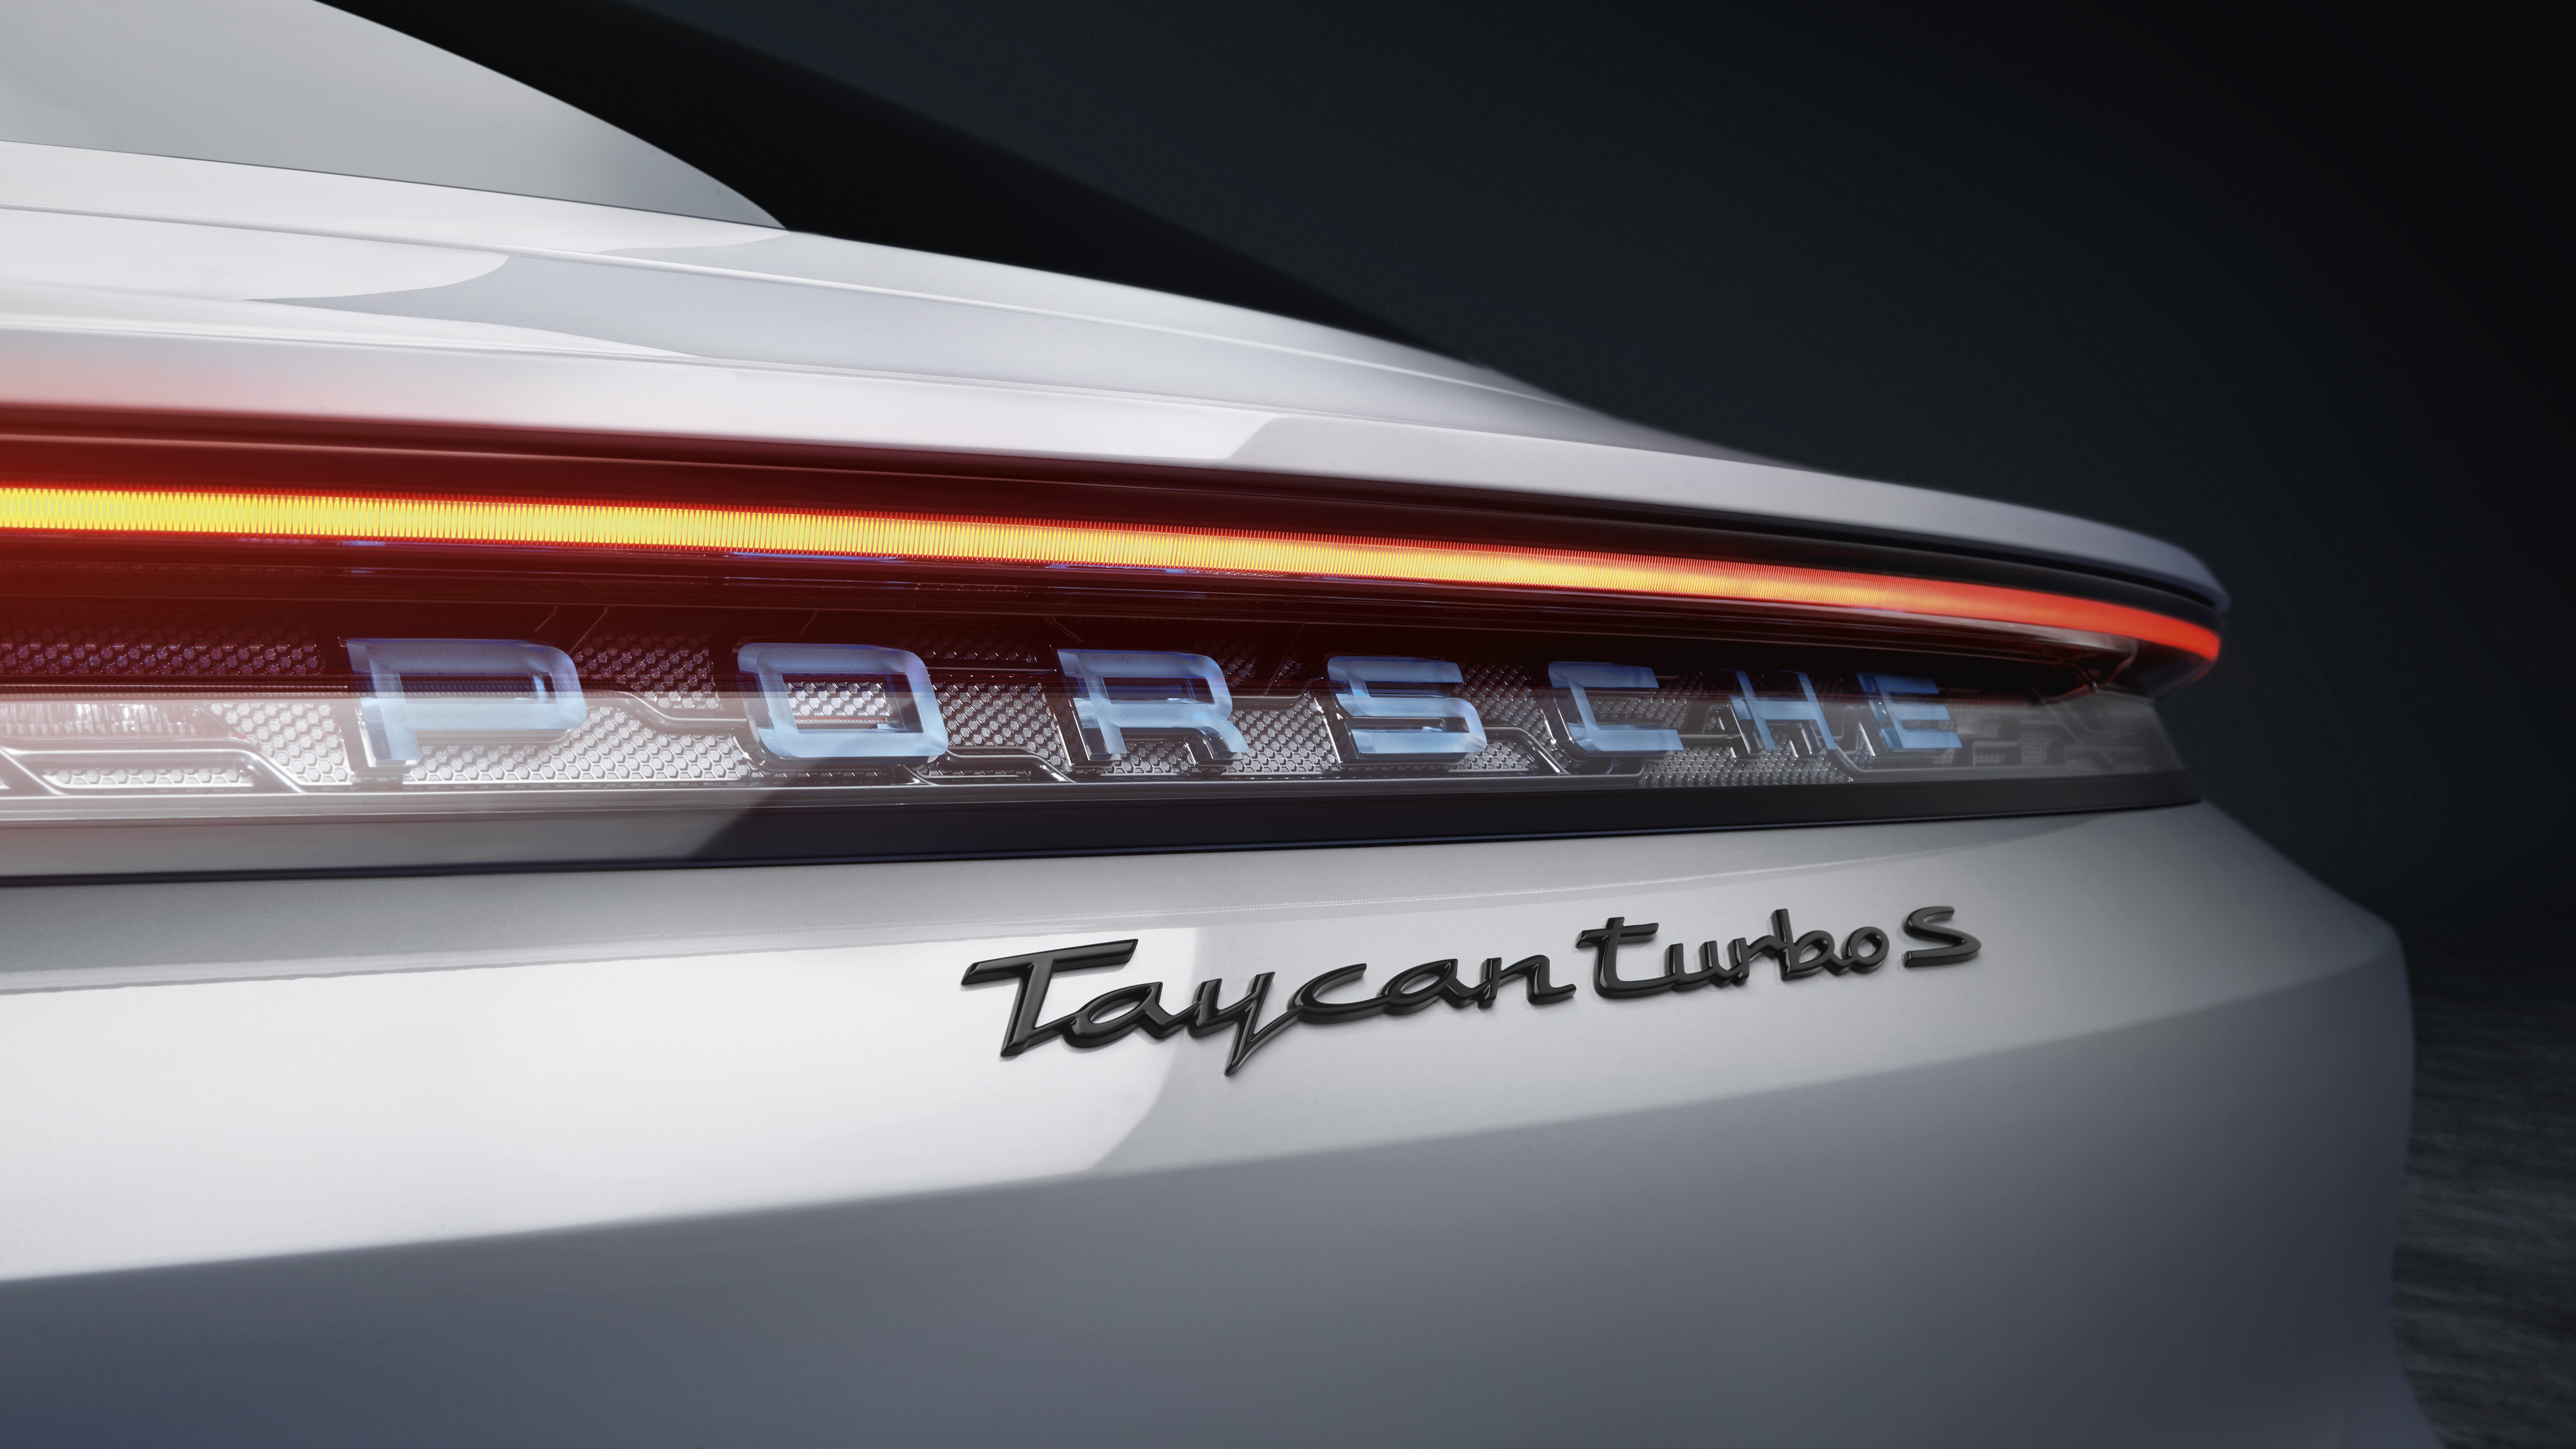 Porsche Taycan Turbo 2019 5K 4 Wallpapers